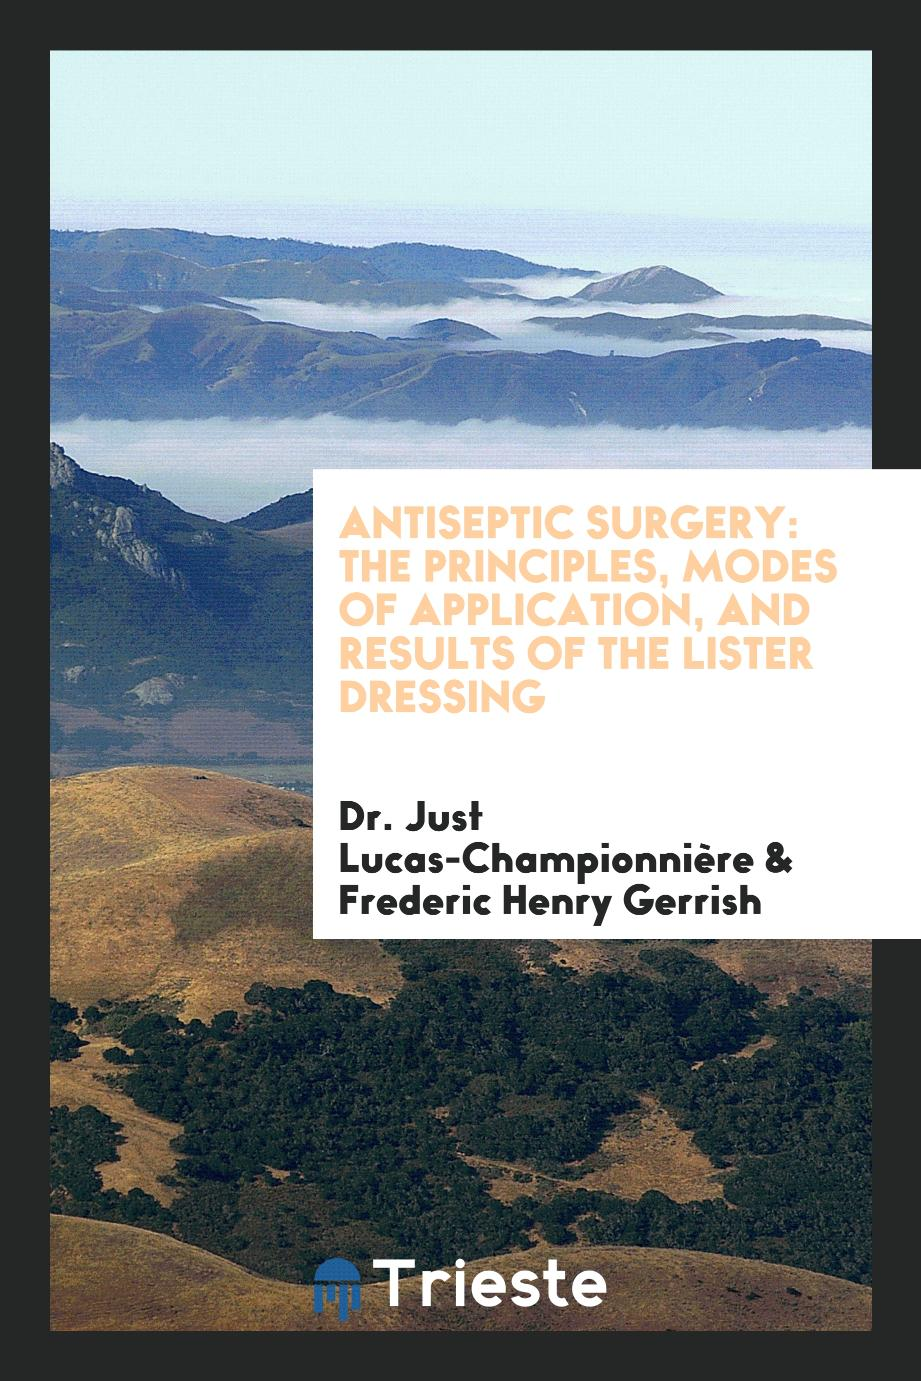 Antiseptic surgery: The Principles, Modes of Application, and Results of the Lister Dressing